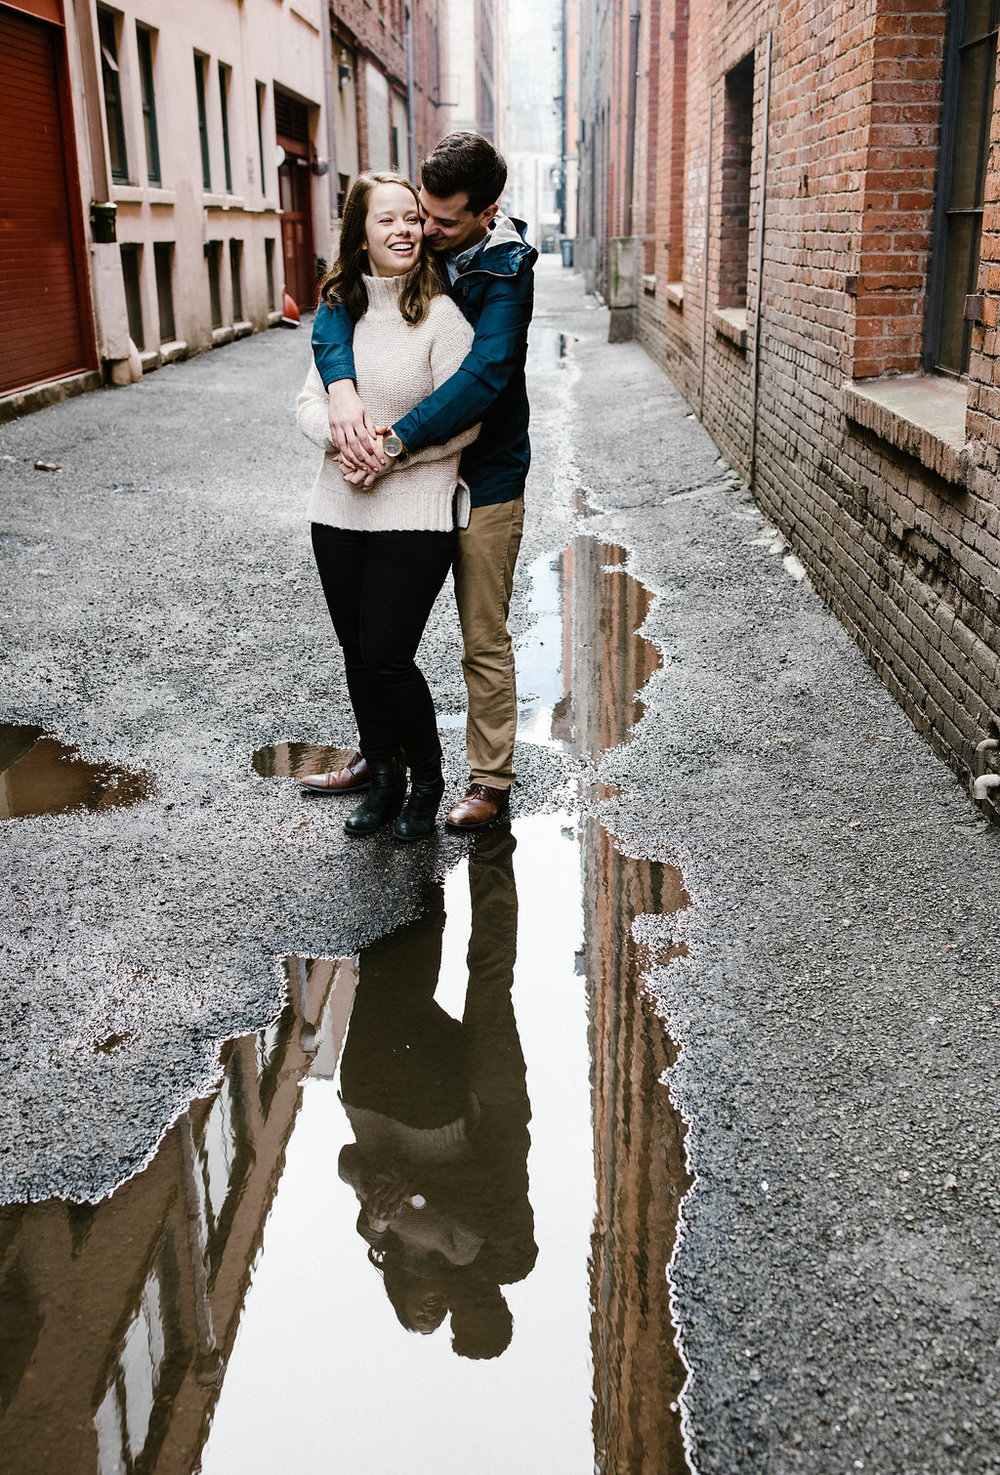 lexi-joey-pioneer-square-engagement-by-Seattle-Wedding-Photographer-Adina-Preston-48.JPG